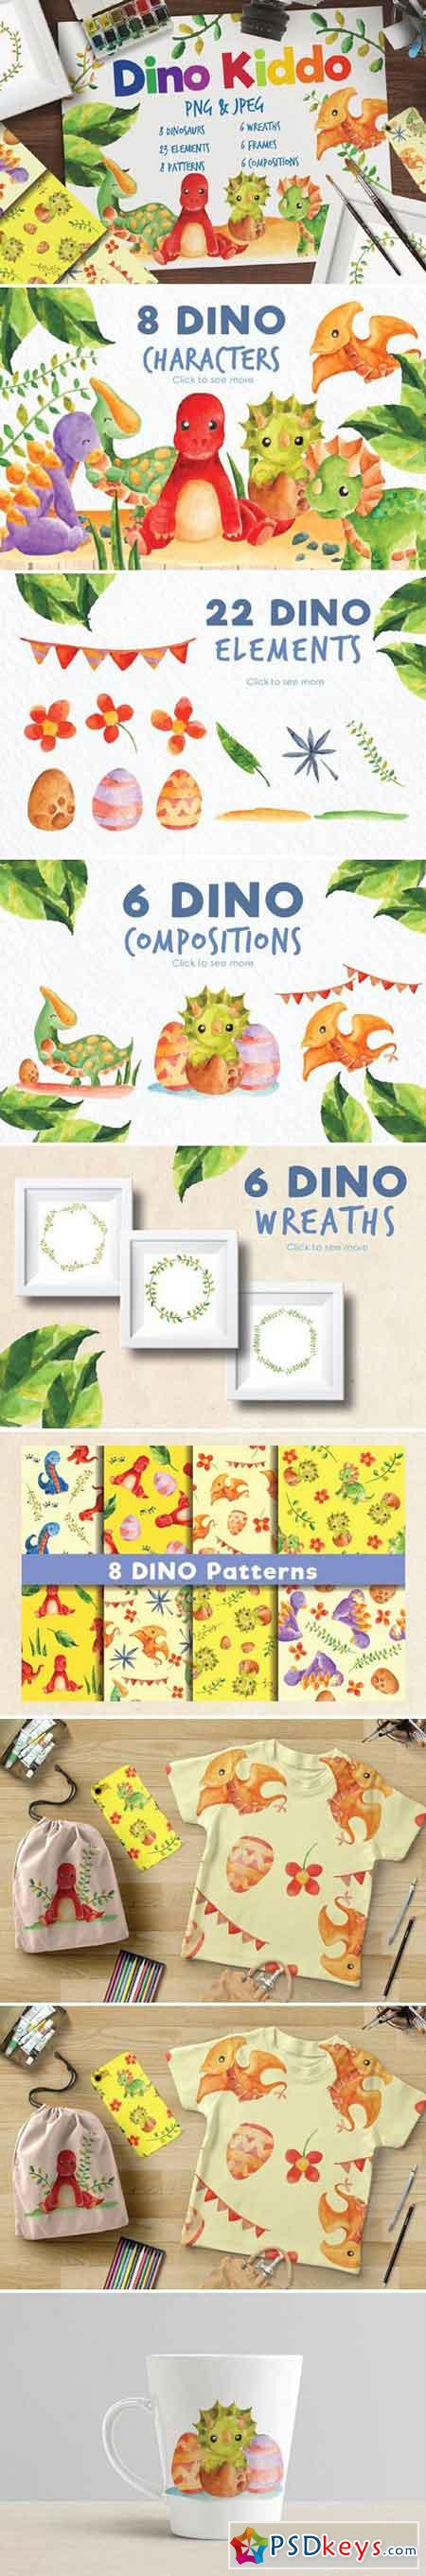 Dino Kiddo Watercolor Set 2058576